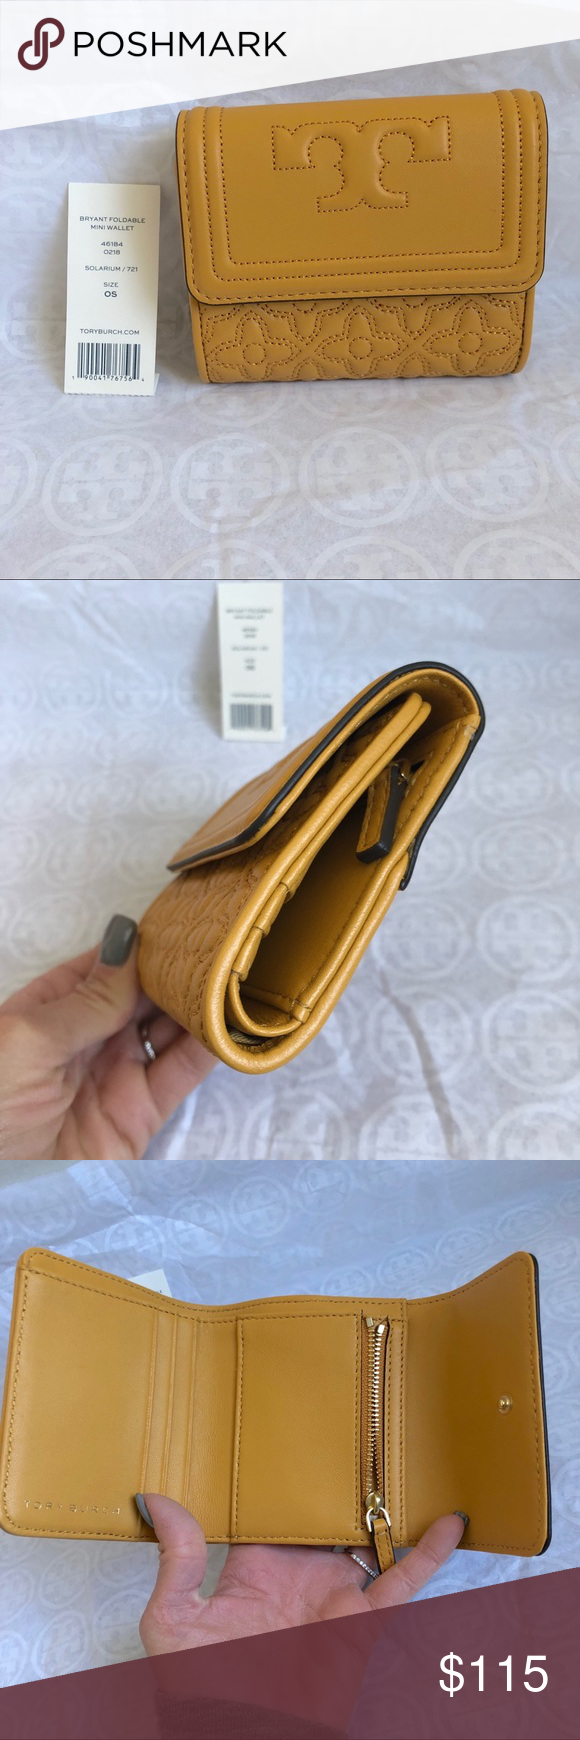 896139a601eb Tory Burch mustard Bryant mini foldable wallet Adorable!! Brand new with  tags